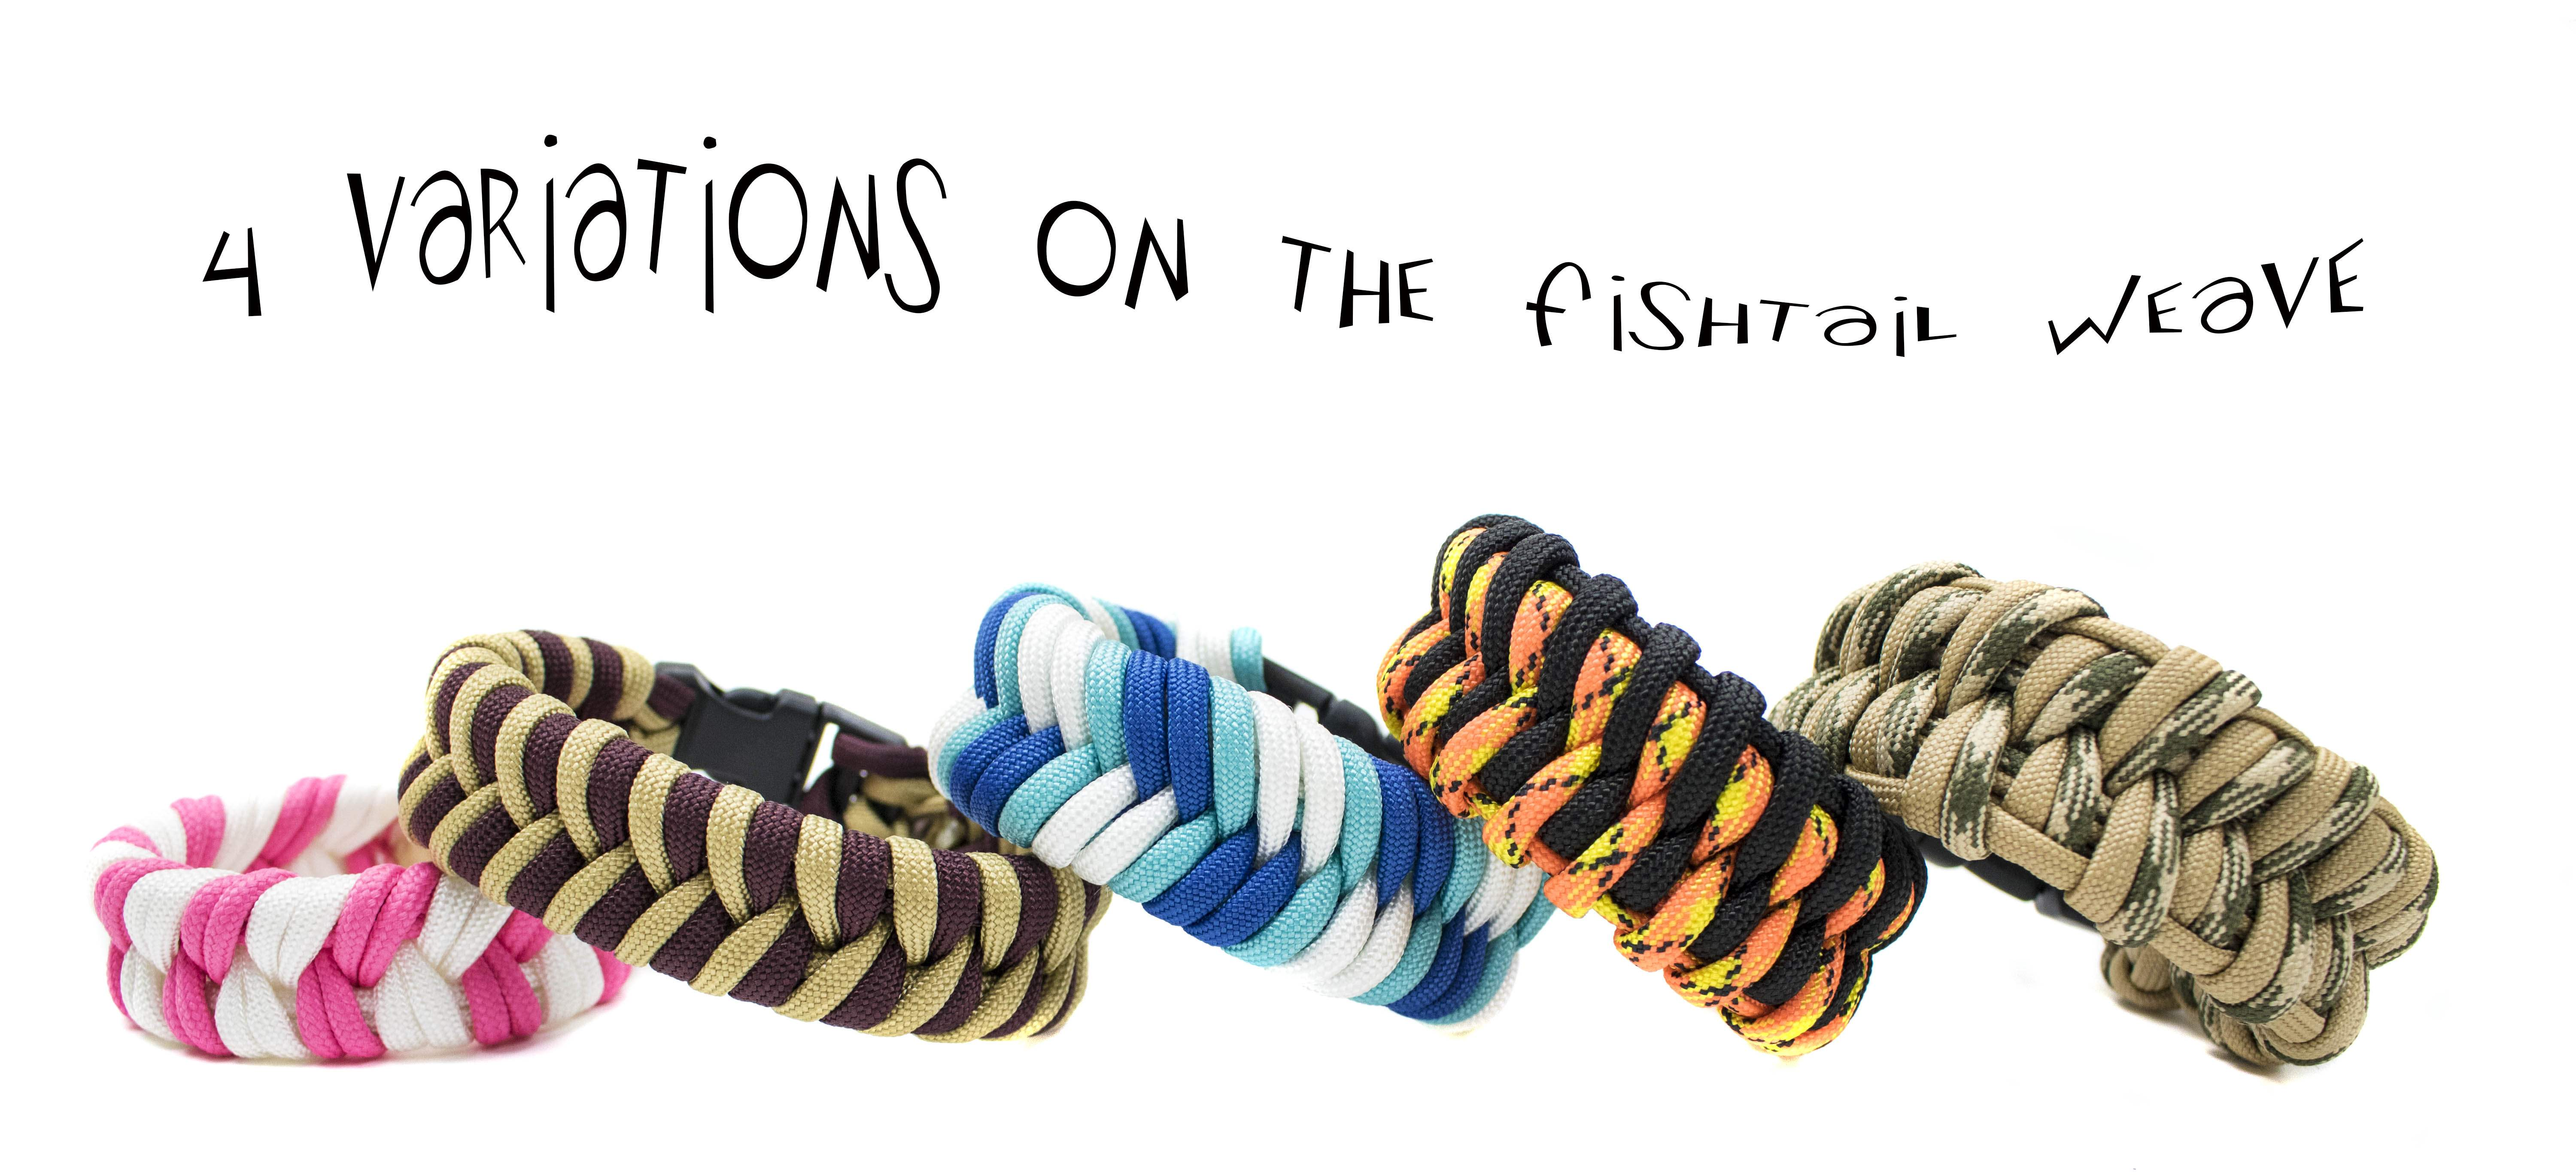 4 Variations on the Fishtail Paracord Weave